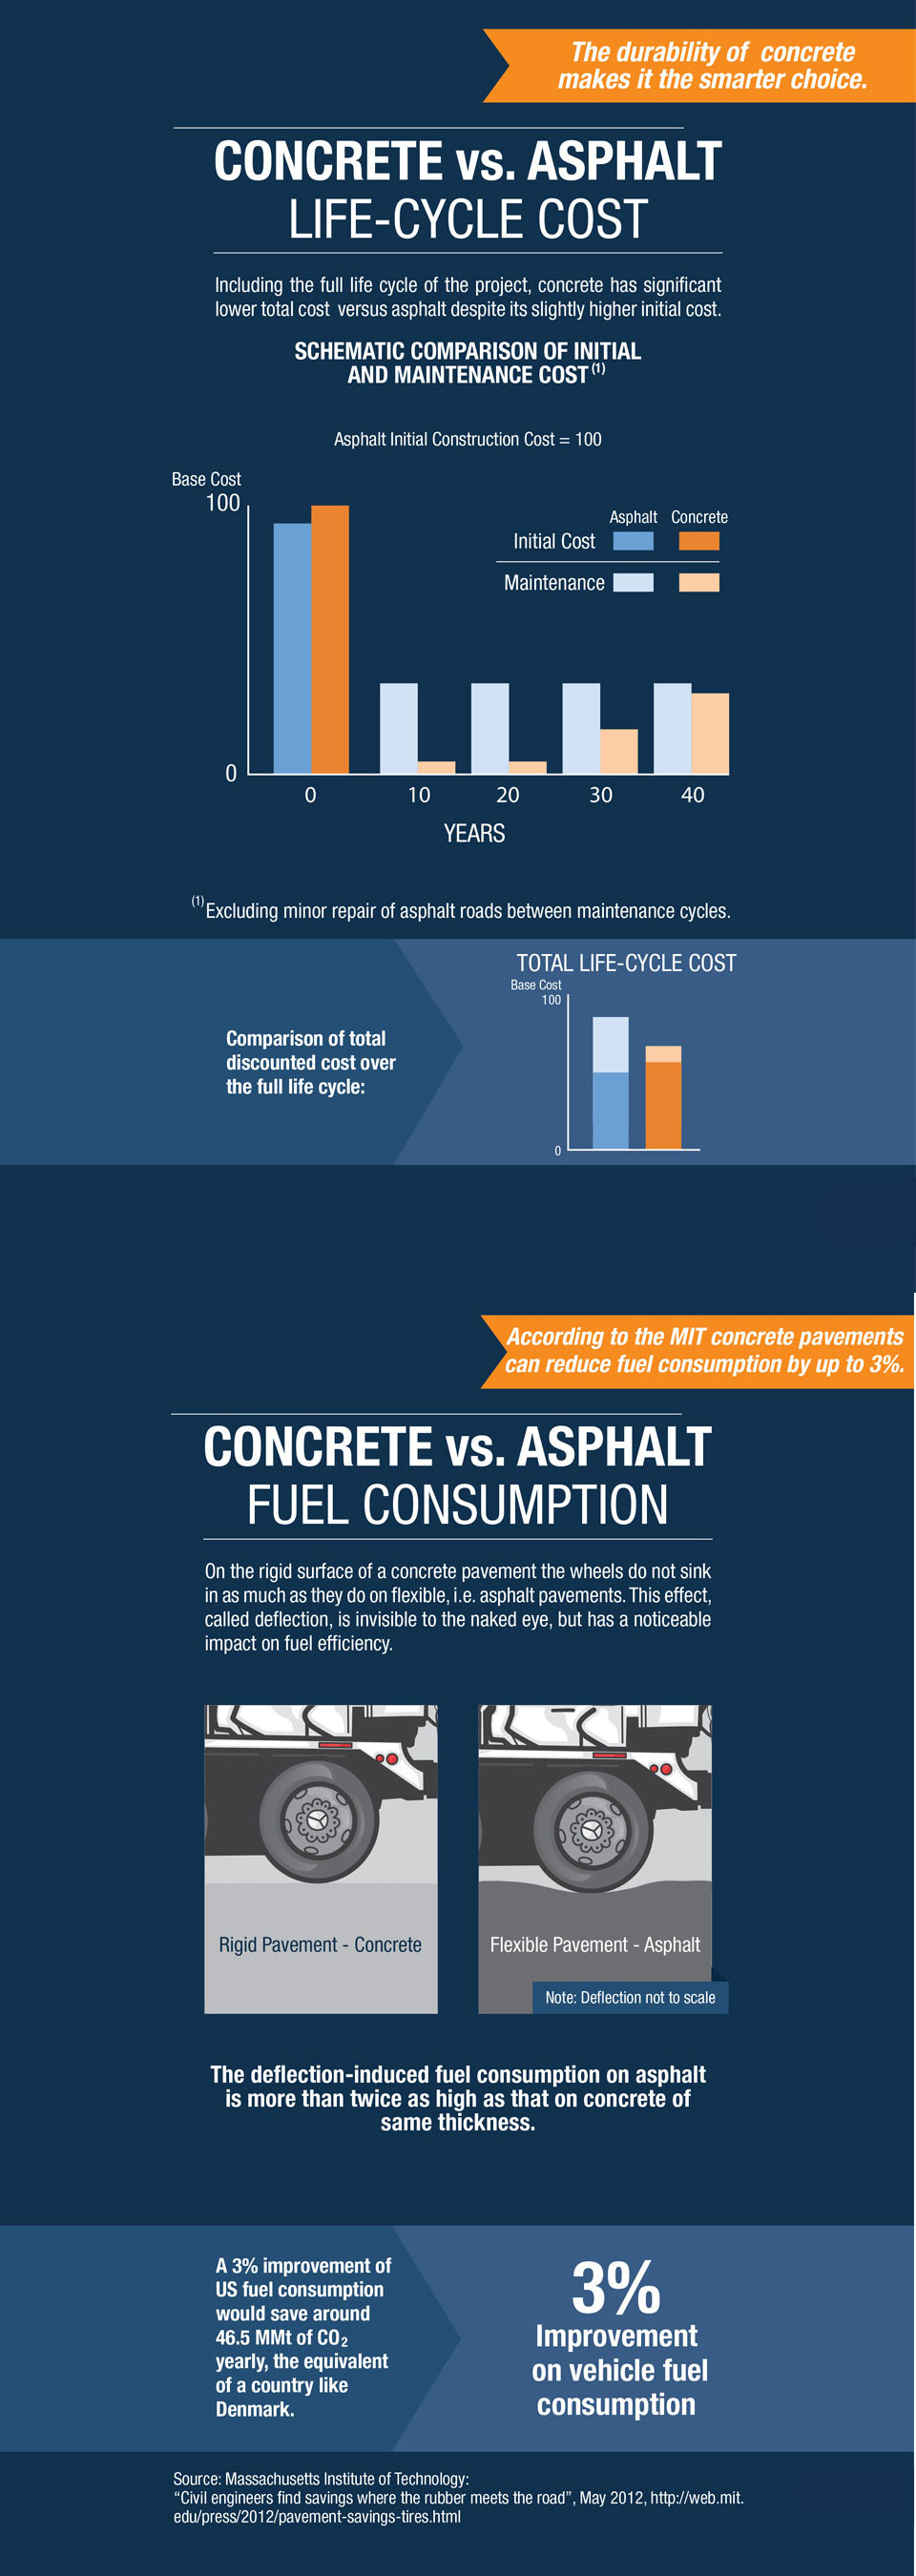 the image shows a comparison between concrete and asphalt